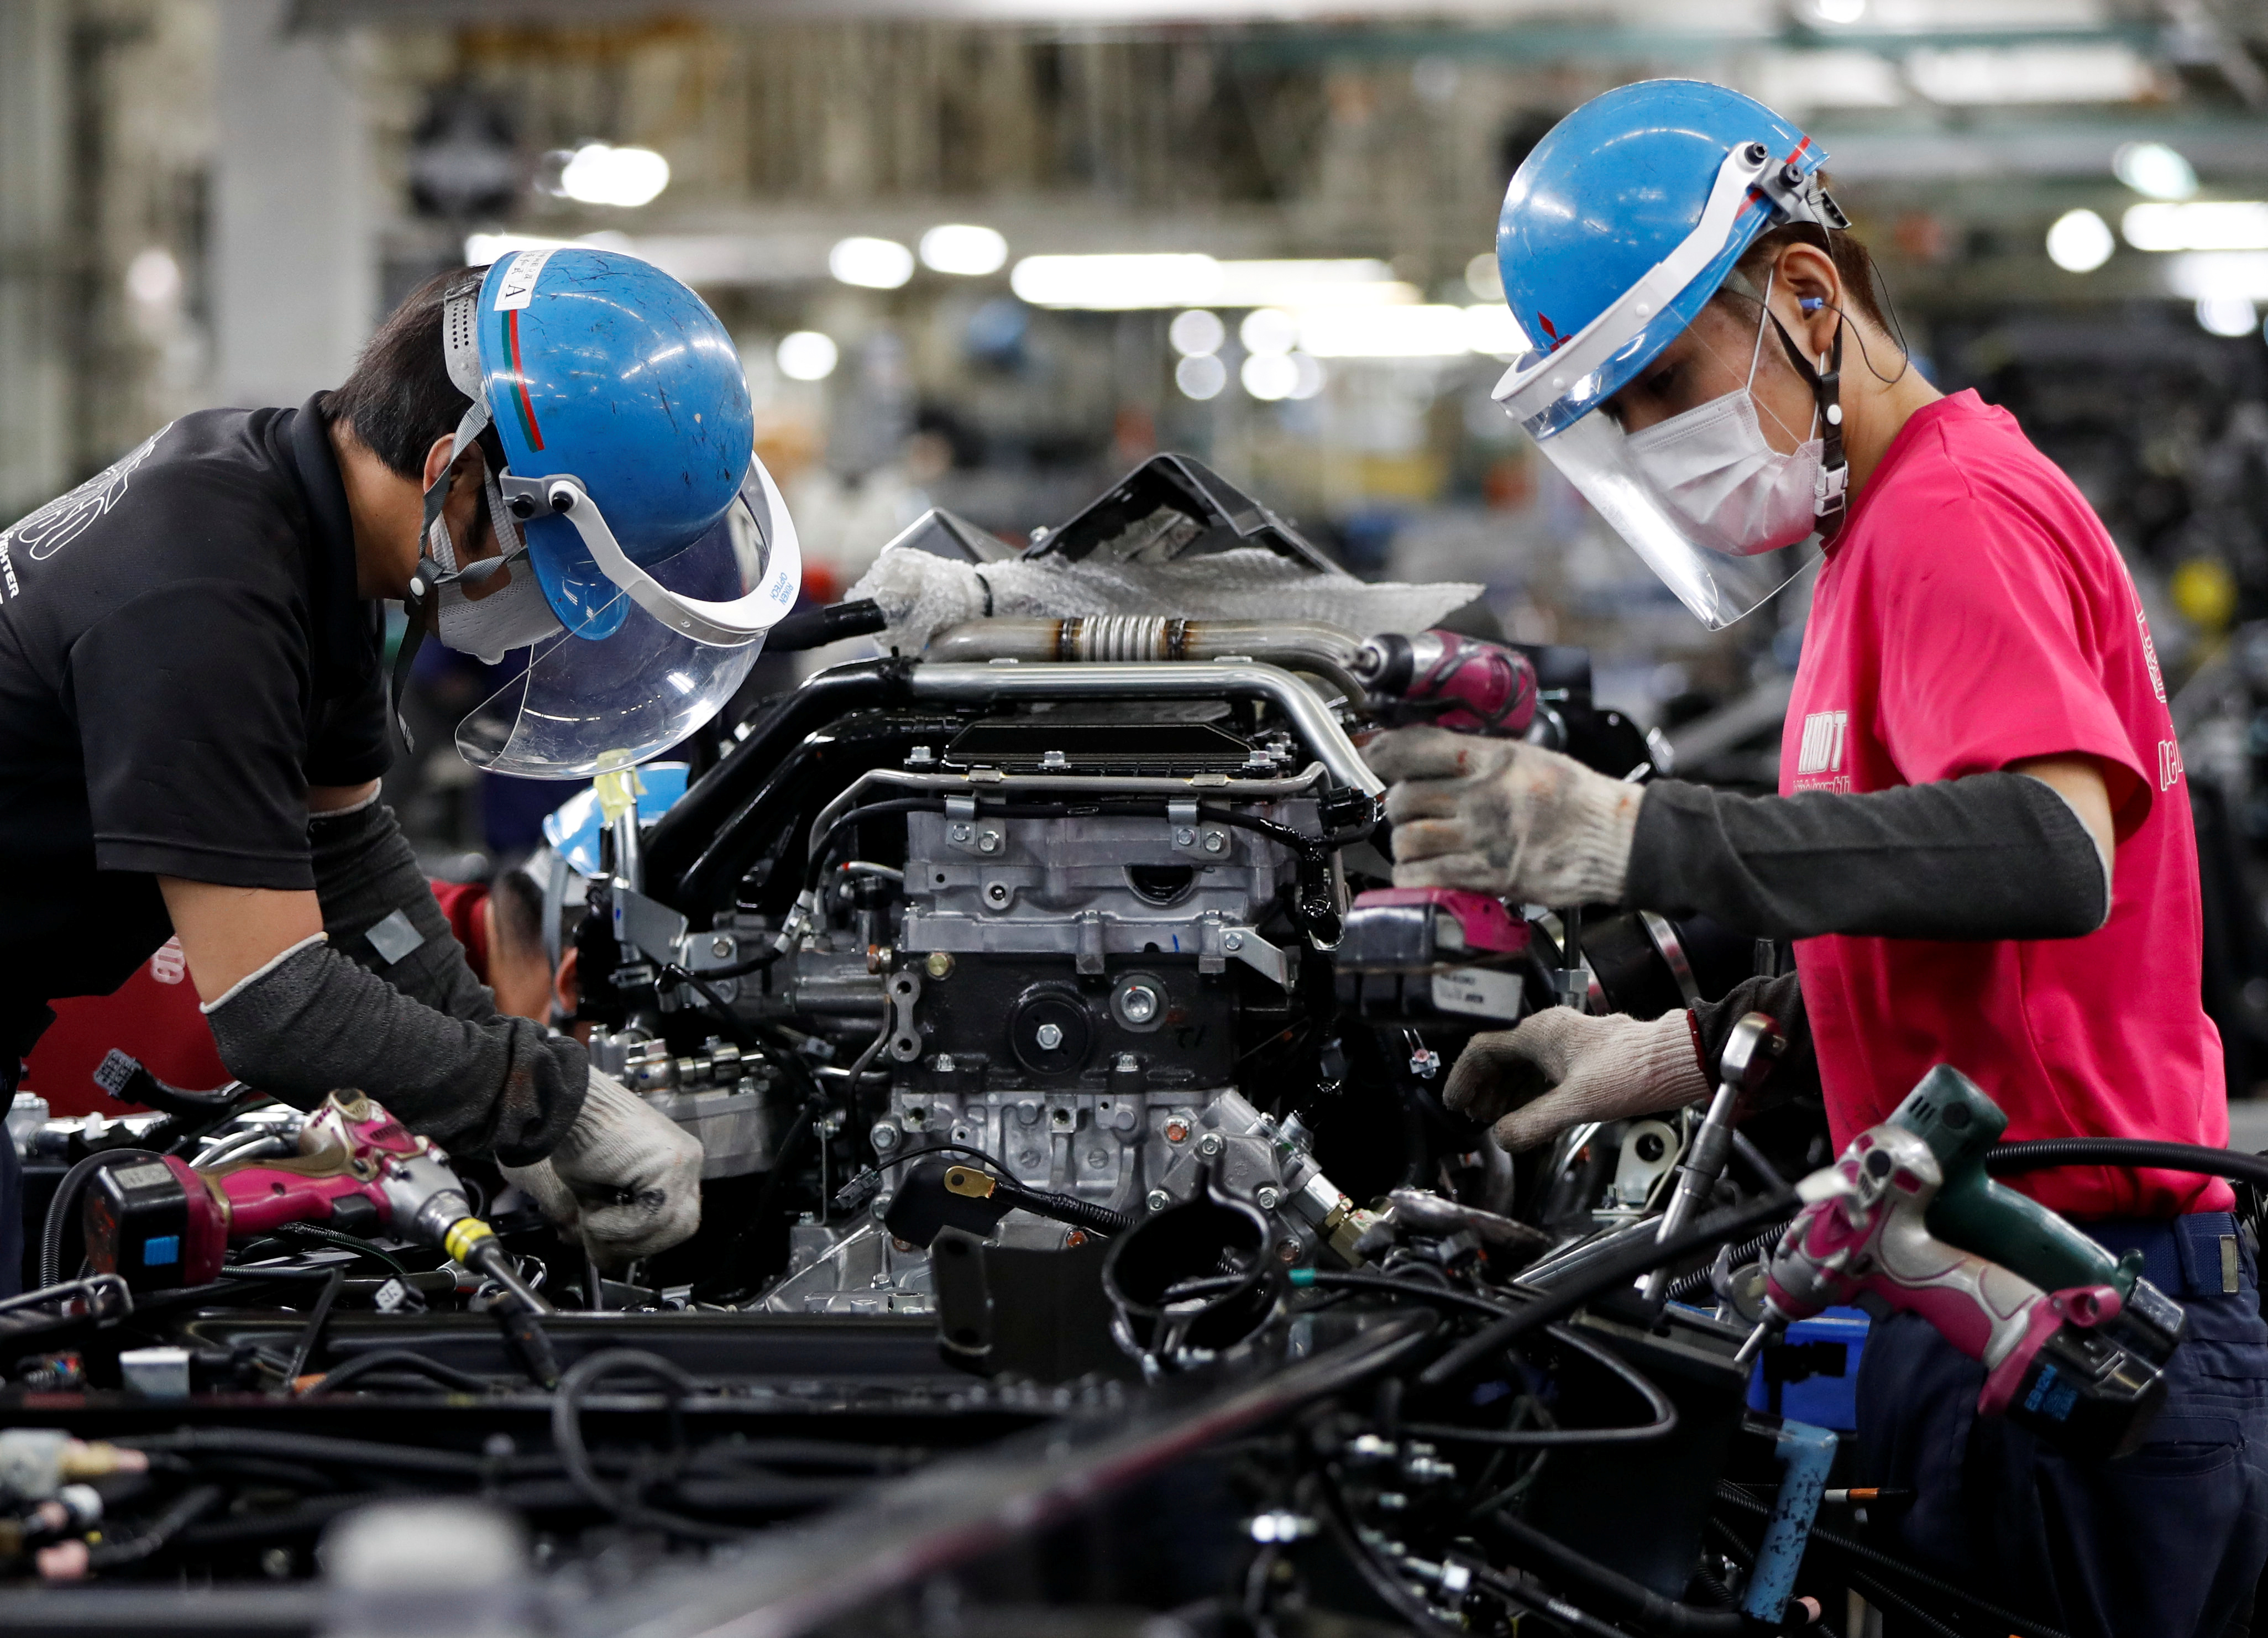 Employees wearing protective face masks and face guards work on the automobile assembly line, during the outbreak of the coronavirus disease (COVID-19), at Kawasaki factory of Mitsubishi Fuso Truck and Bus Corp., owned by Germany-based Daimler AG, in Kawasaki, south of Tokyo, Japan May 18, 2020.  REUTERS/Issei Kato